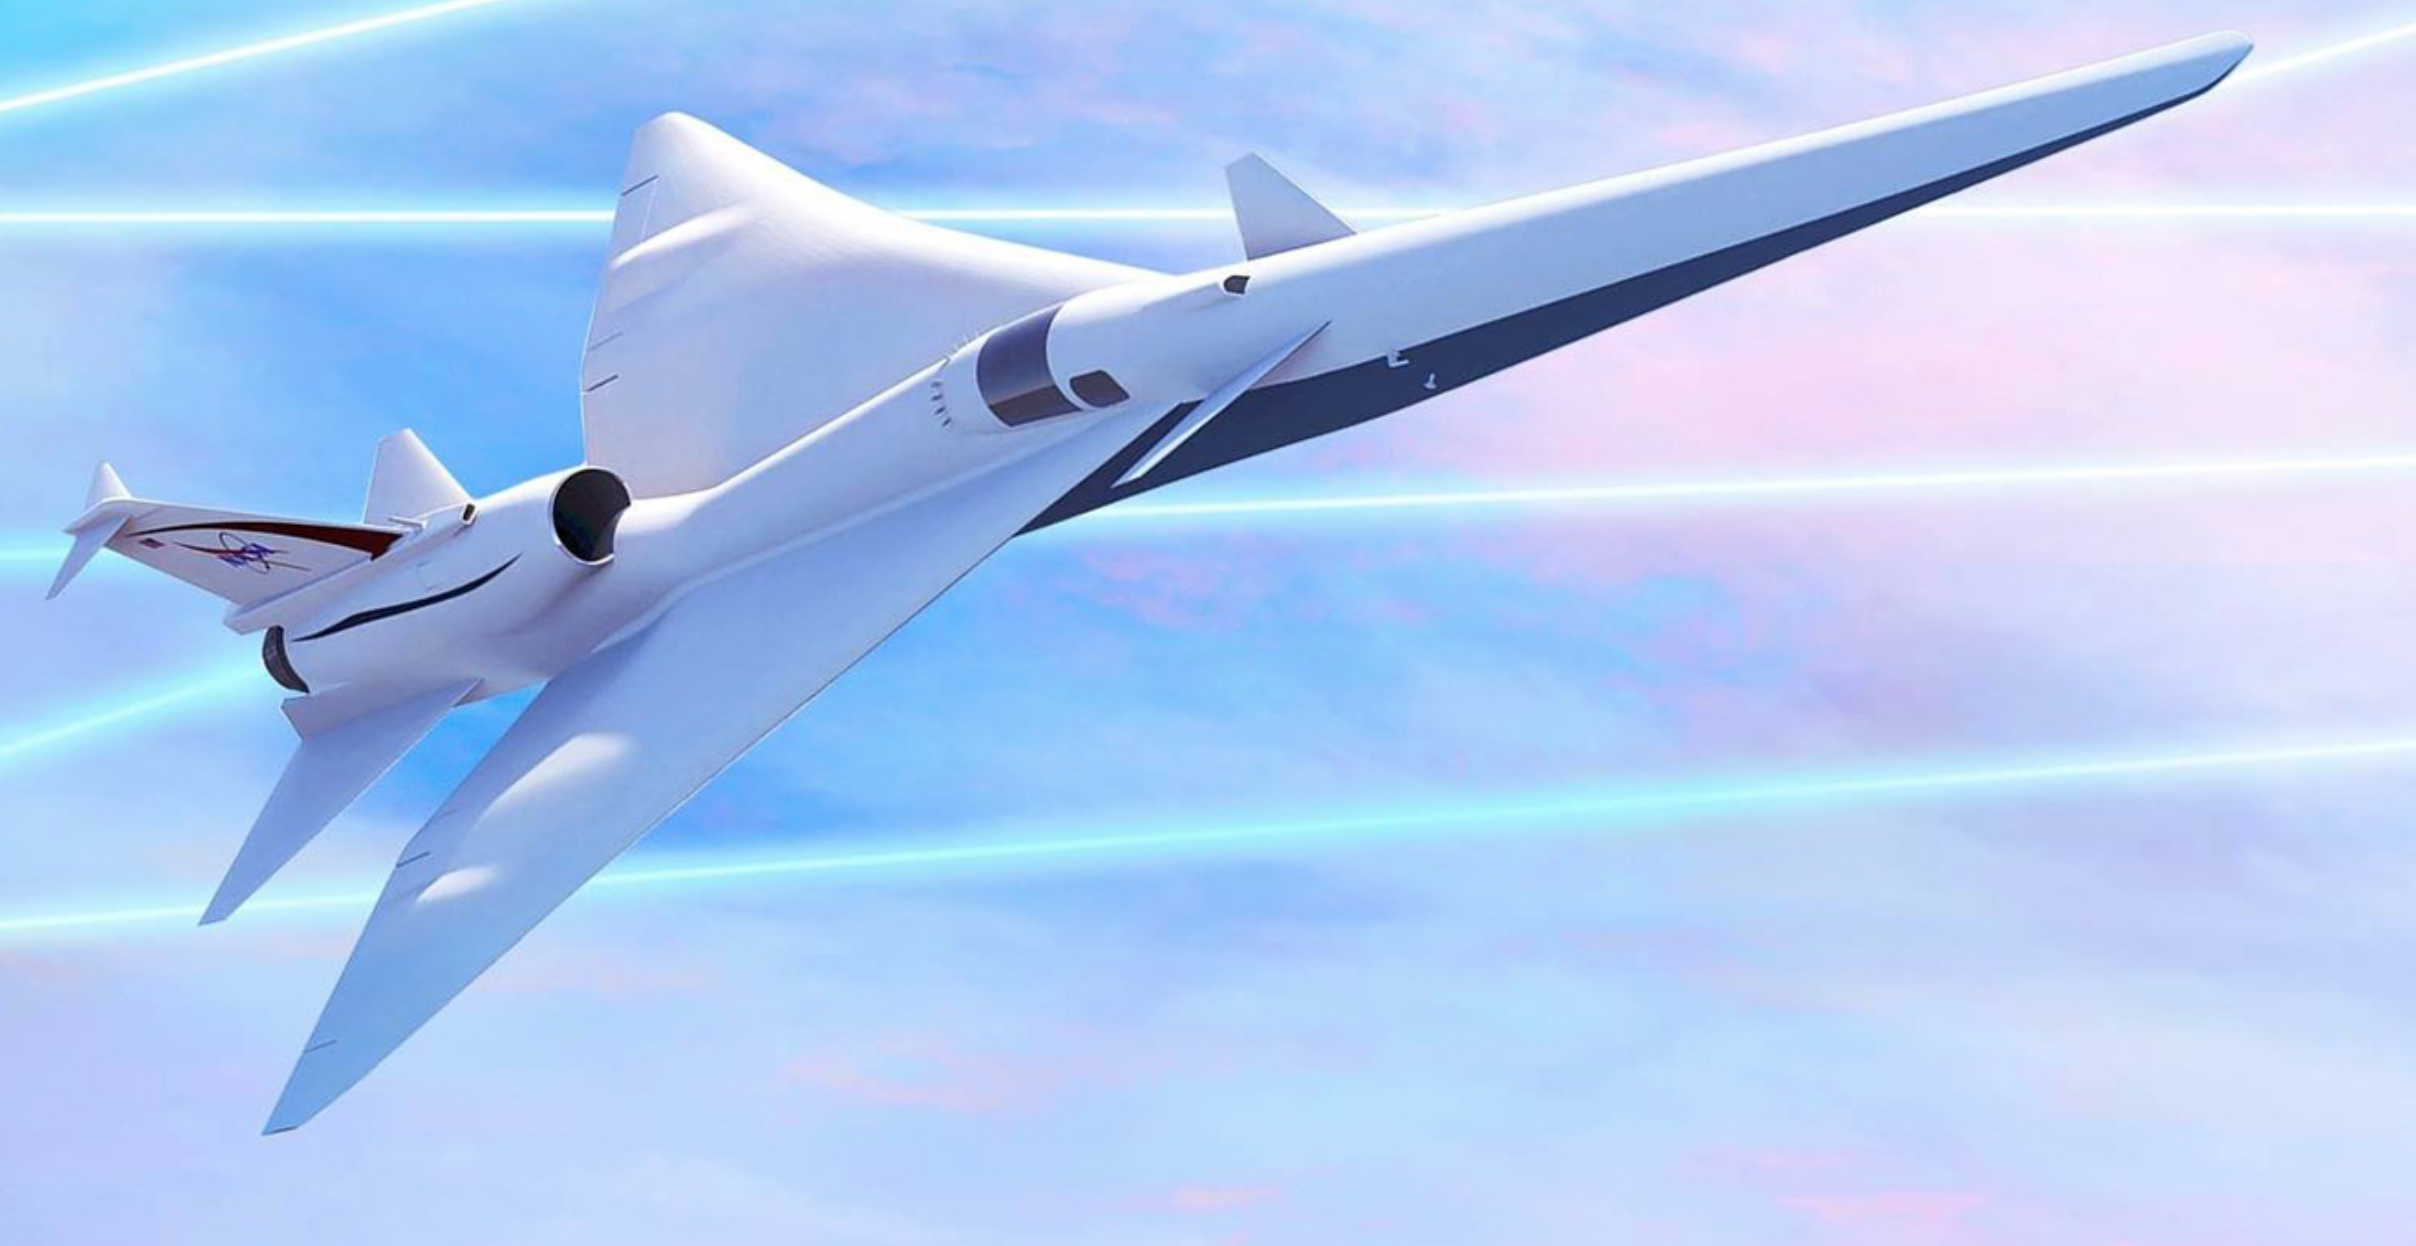 NASA Chooses Carnegie Mellon University to Research 3D Printing for Aviation